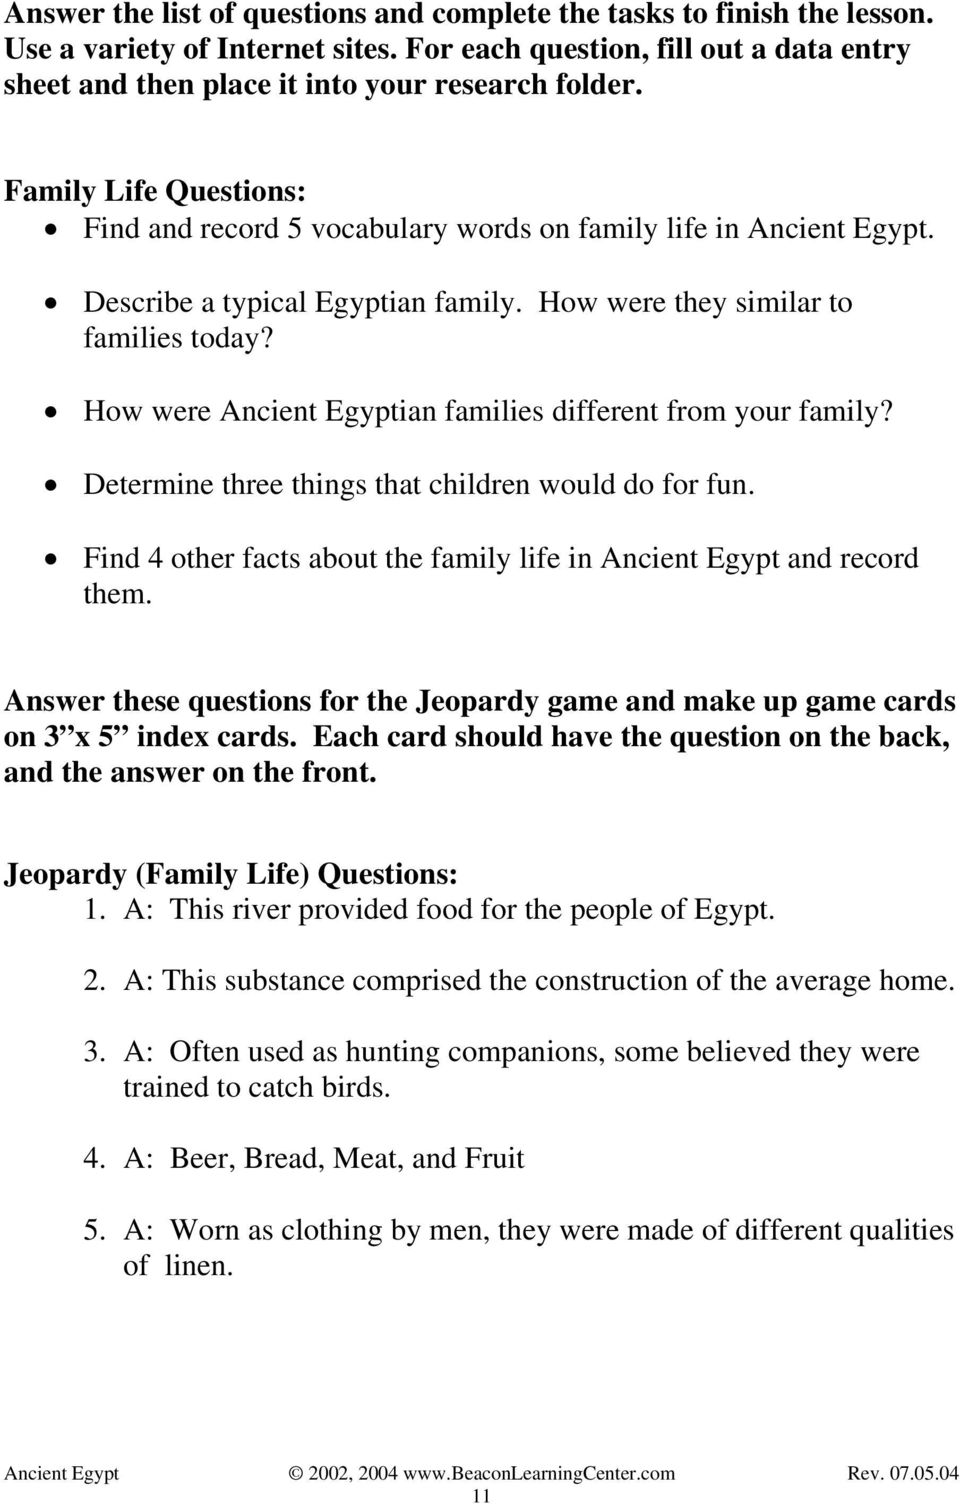 How were Ancient Egyptian families different from your family? Determine three things that children would do for fun. Find 4 other facts about the family life in Ancient Egypt and record them.